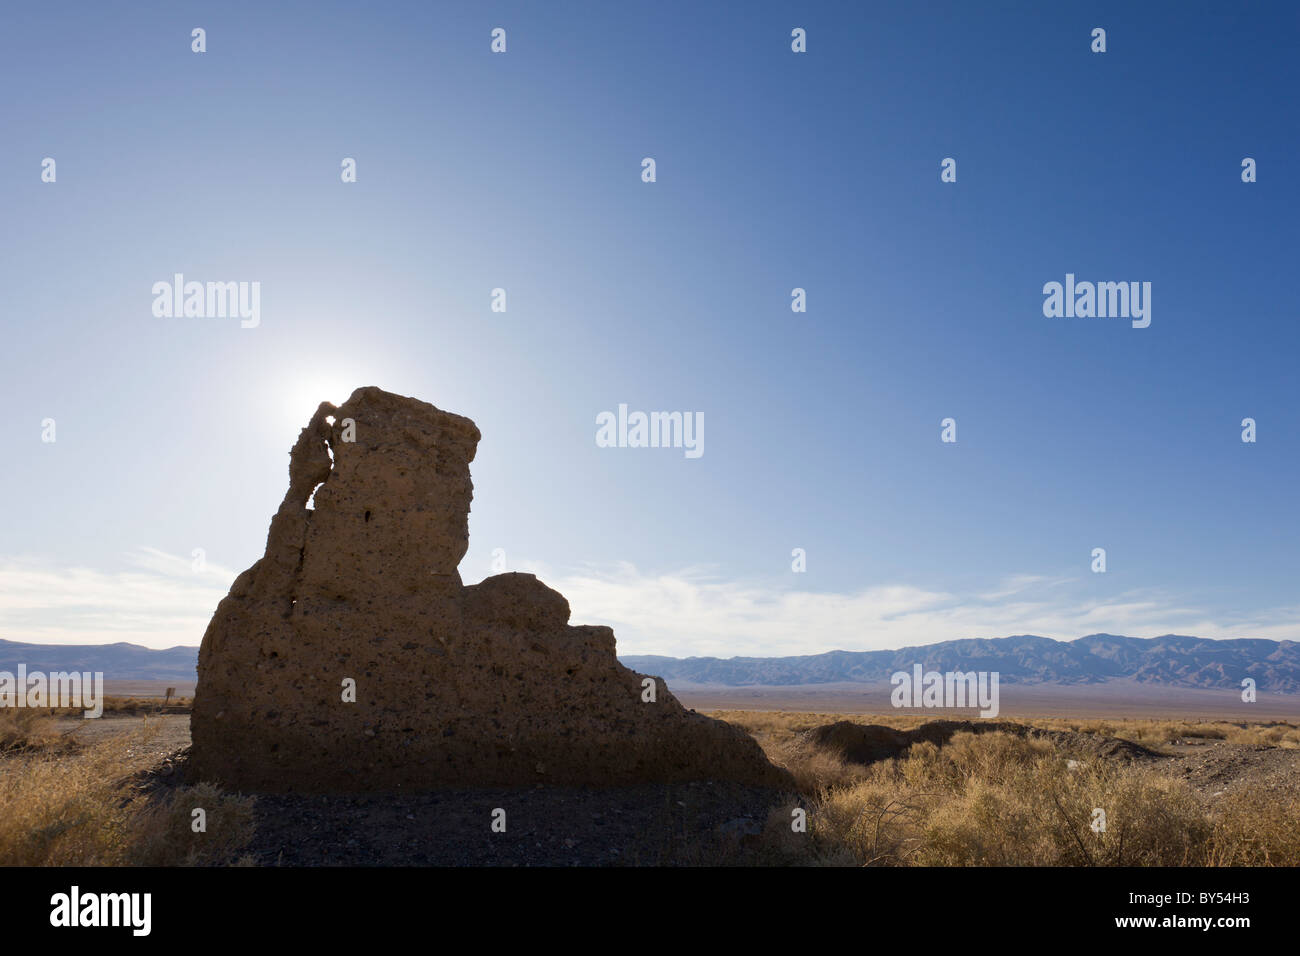 Ruins of the Frank 'Shorty' Harris house in the Death Valley ghost town of Ballarat, California, USA. - Stock Image